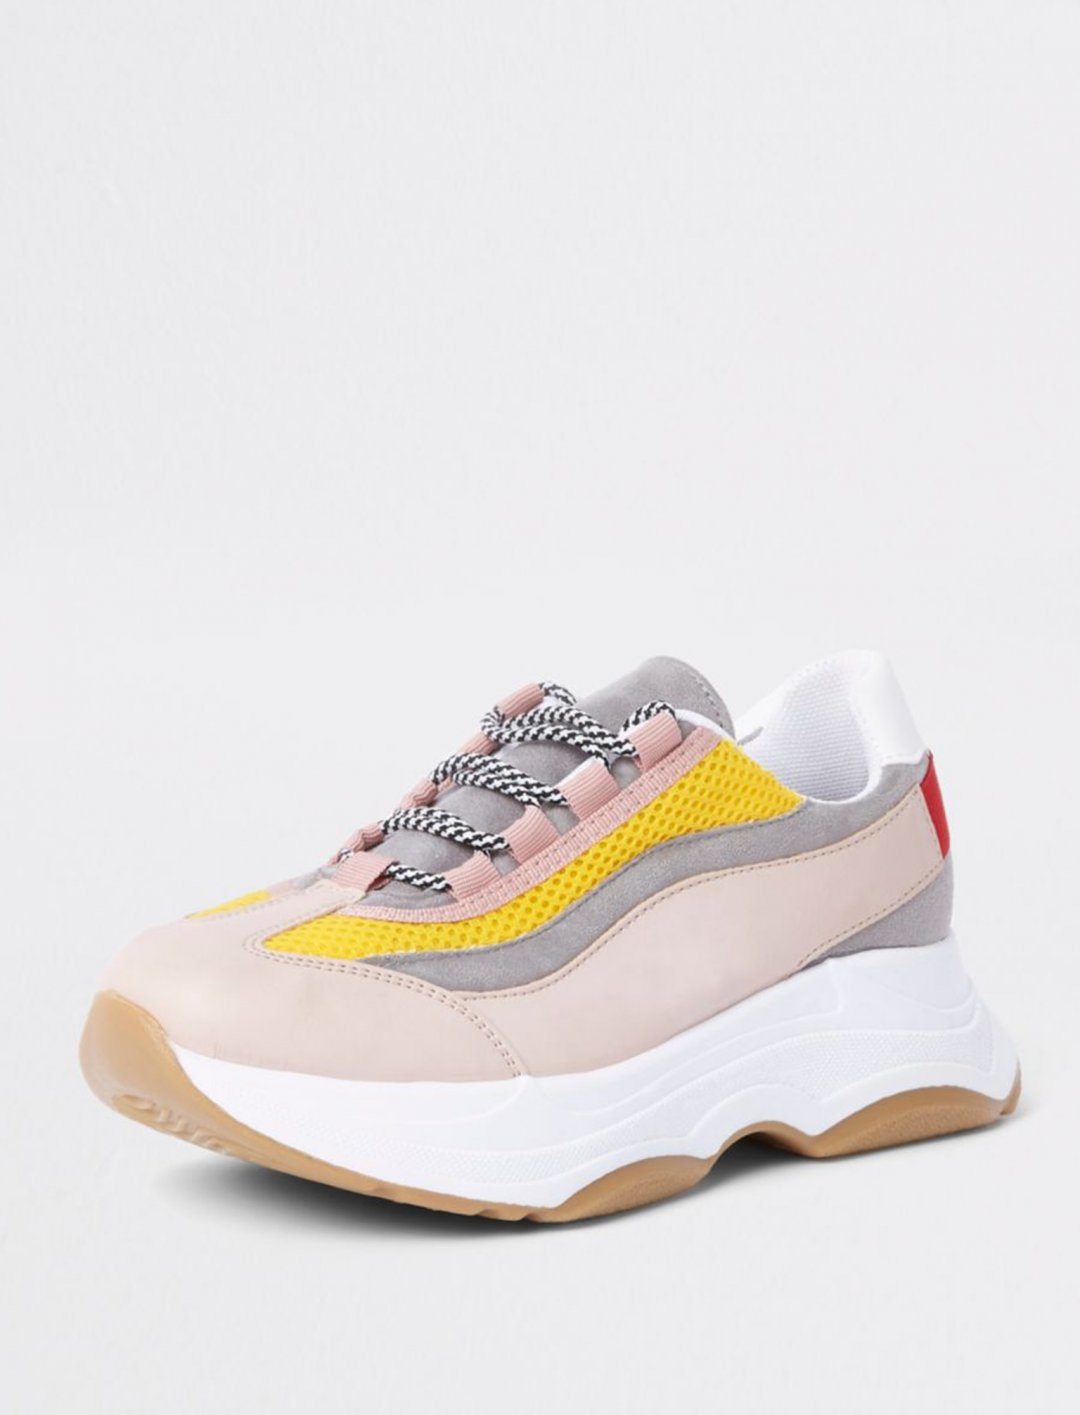 """River Island Chunky Trainers {""""id"""":12,""""product_section_id"""":1,""""name"""":""""Shoes"""",""""order"""":12} River Island"""